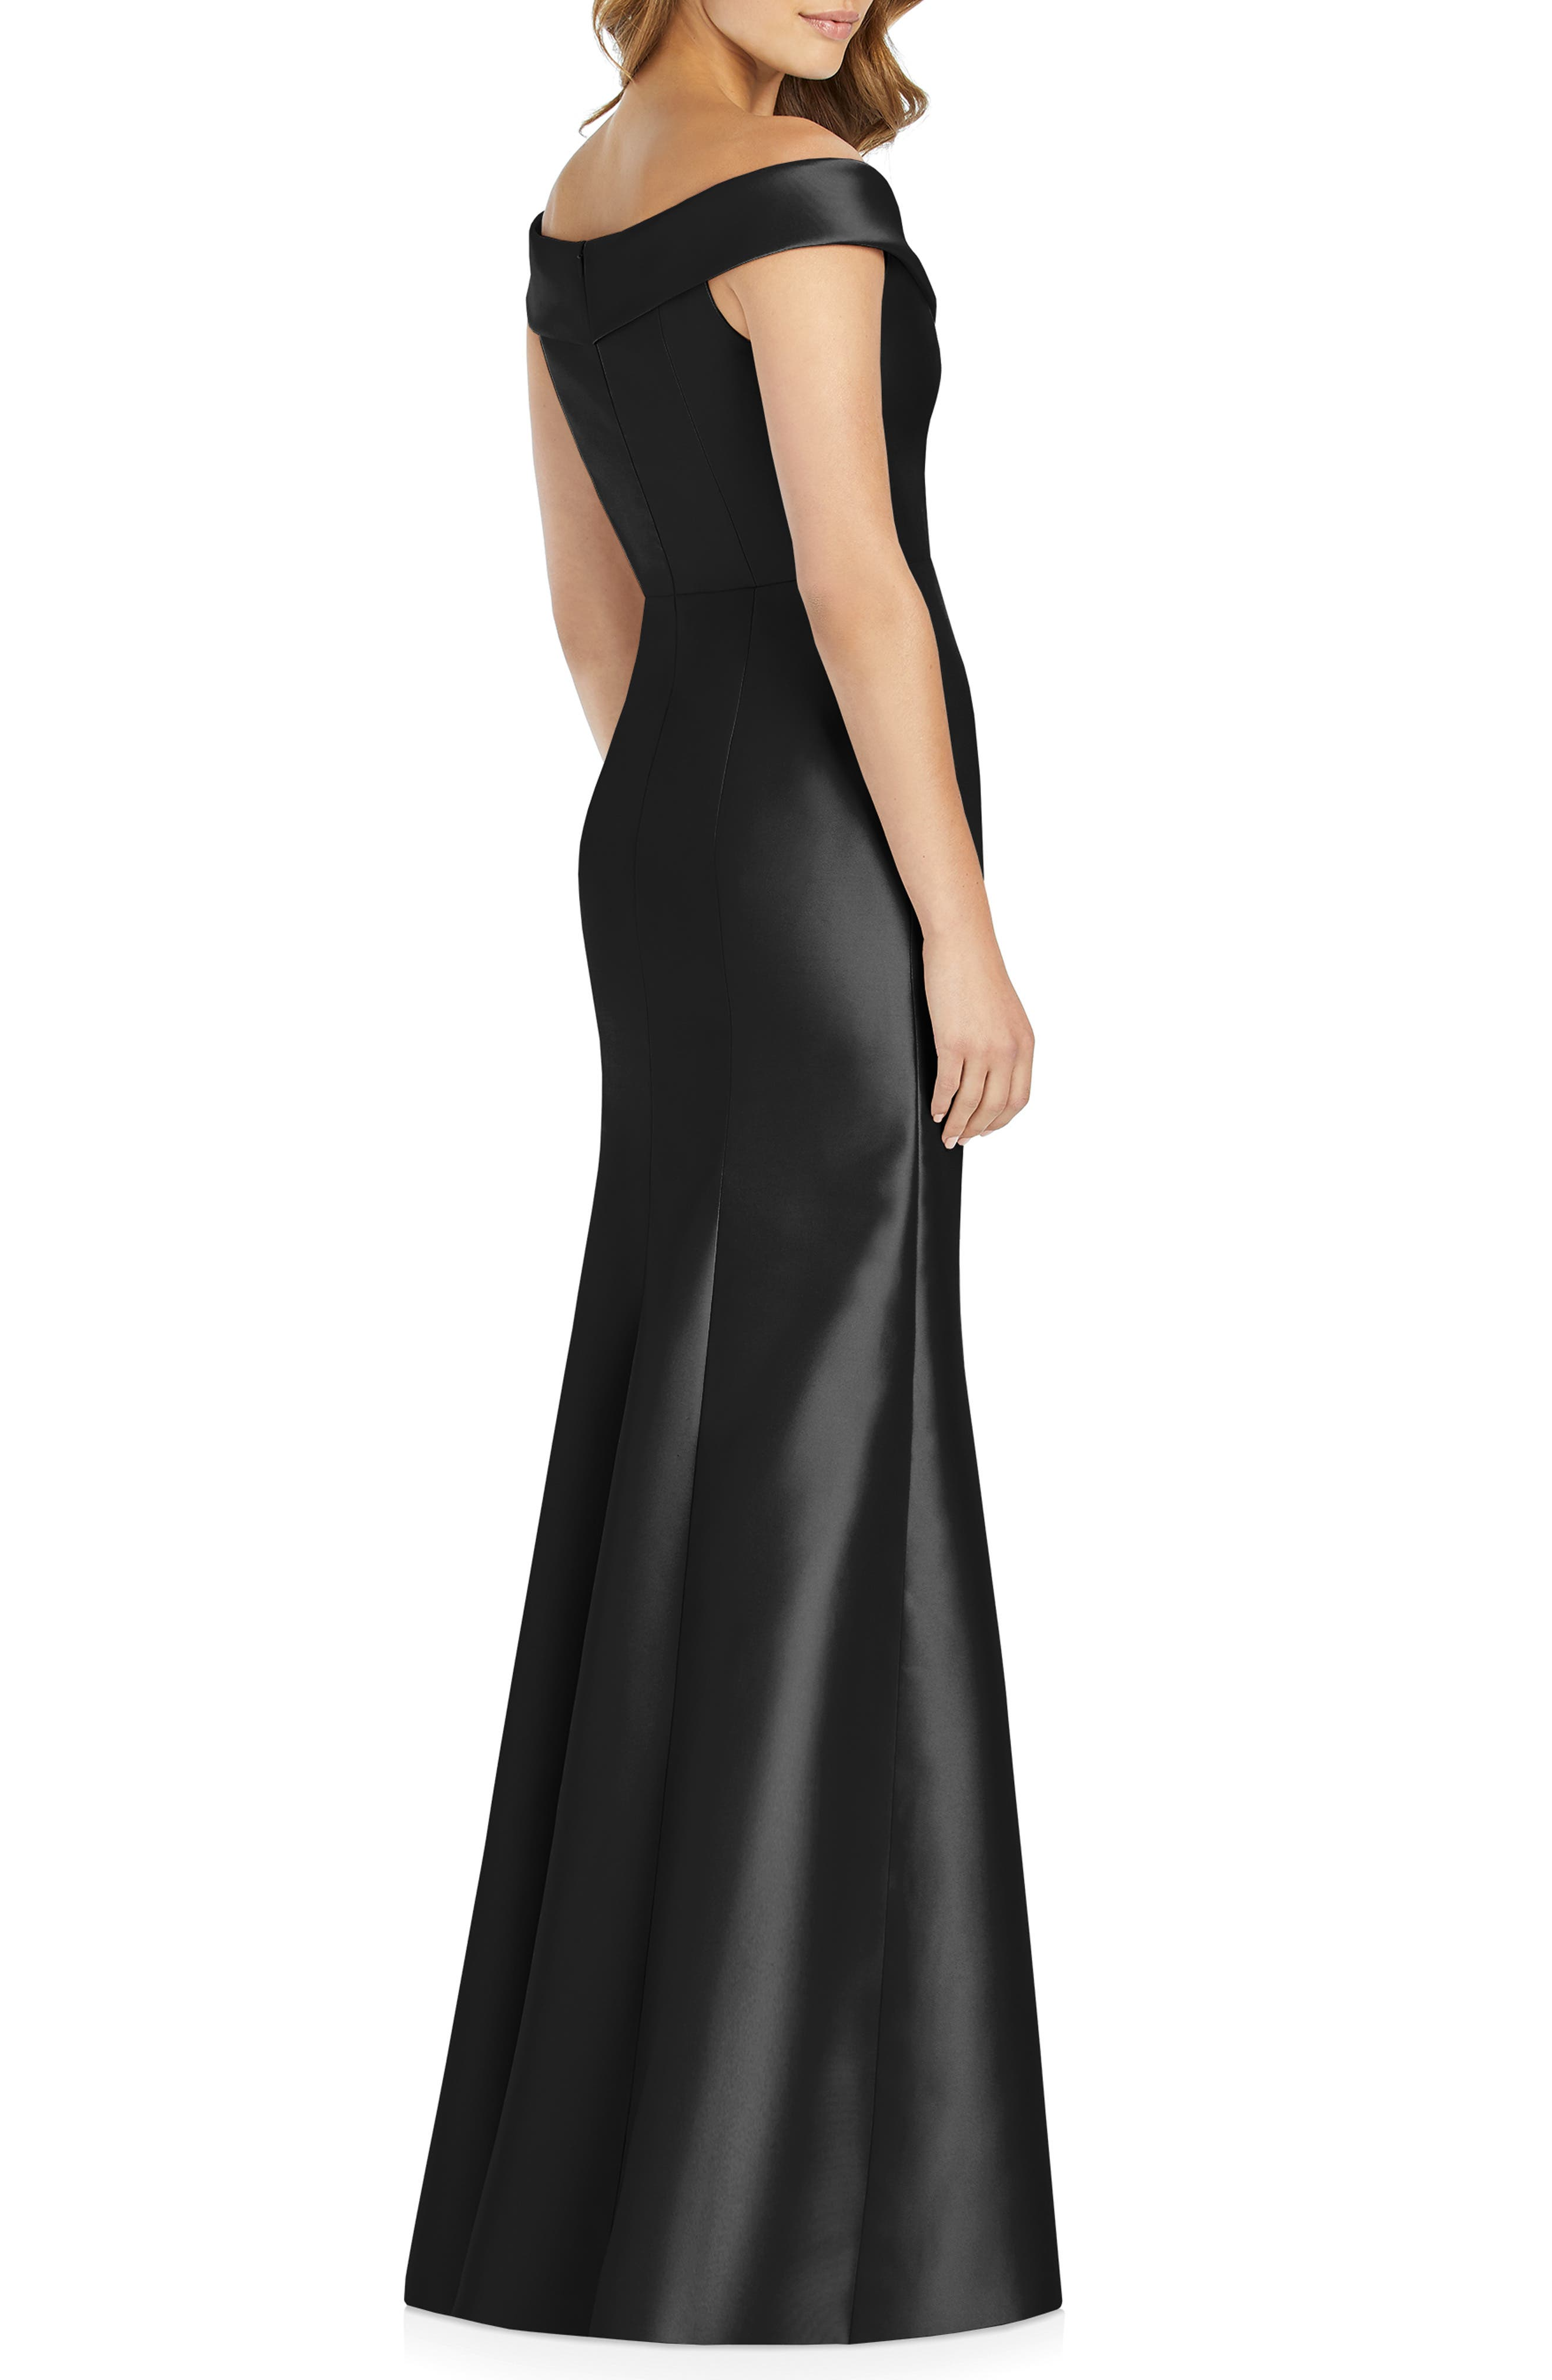 ALFRED SUNG, Portrait Collar Satin Gown, Alternate thumbnail 2, color, BLACK